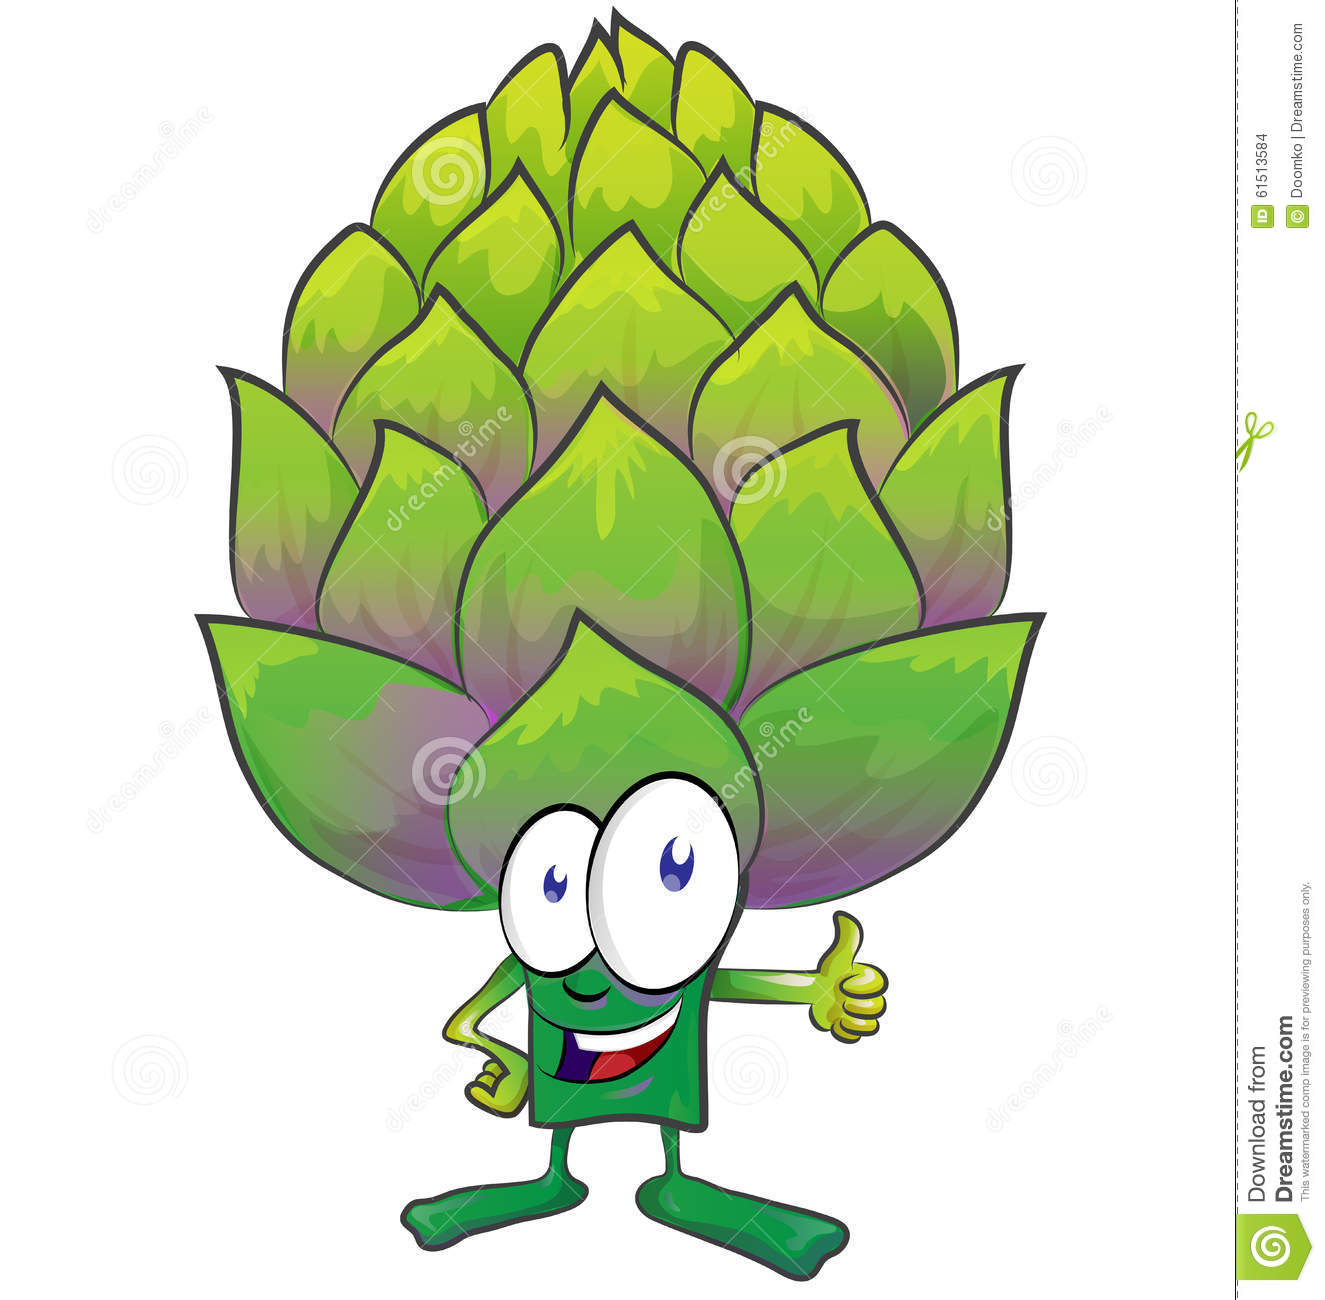 fun artichoke cartoon stock vector image 61513584 fruits and vegetables clipart coloring fruits and vegetables clipart coloring